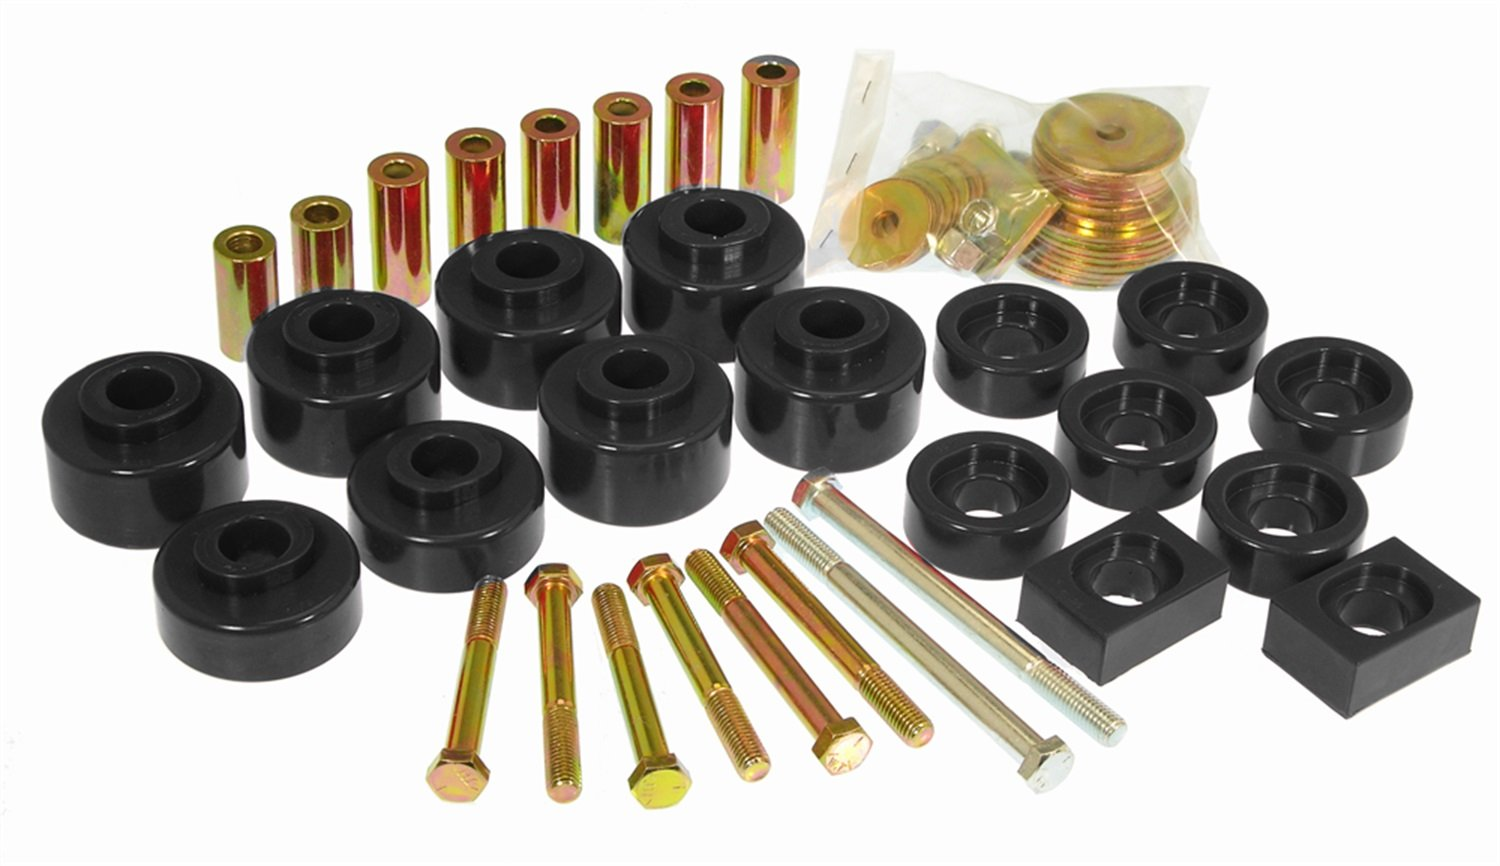 Prothane 6-107-BL Black Body and Cab Mount Bushing Kit - 20 Piece by Prothane